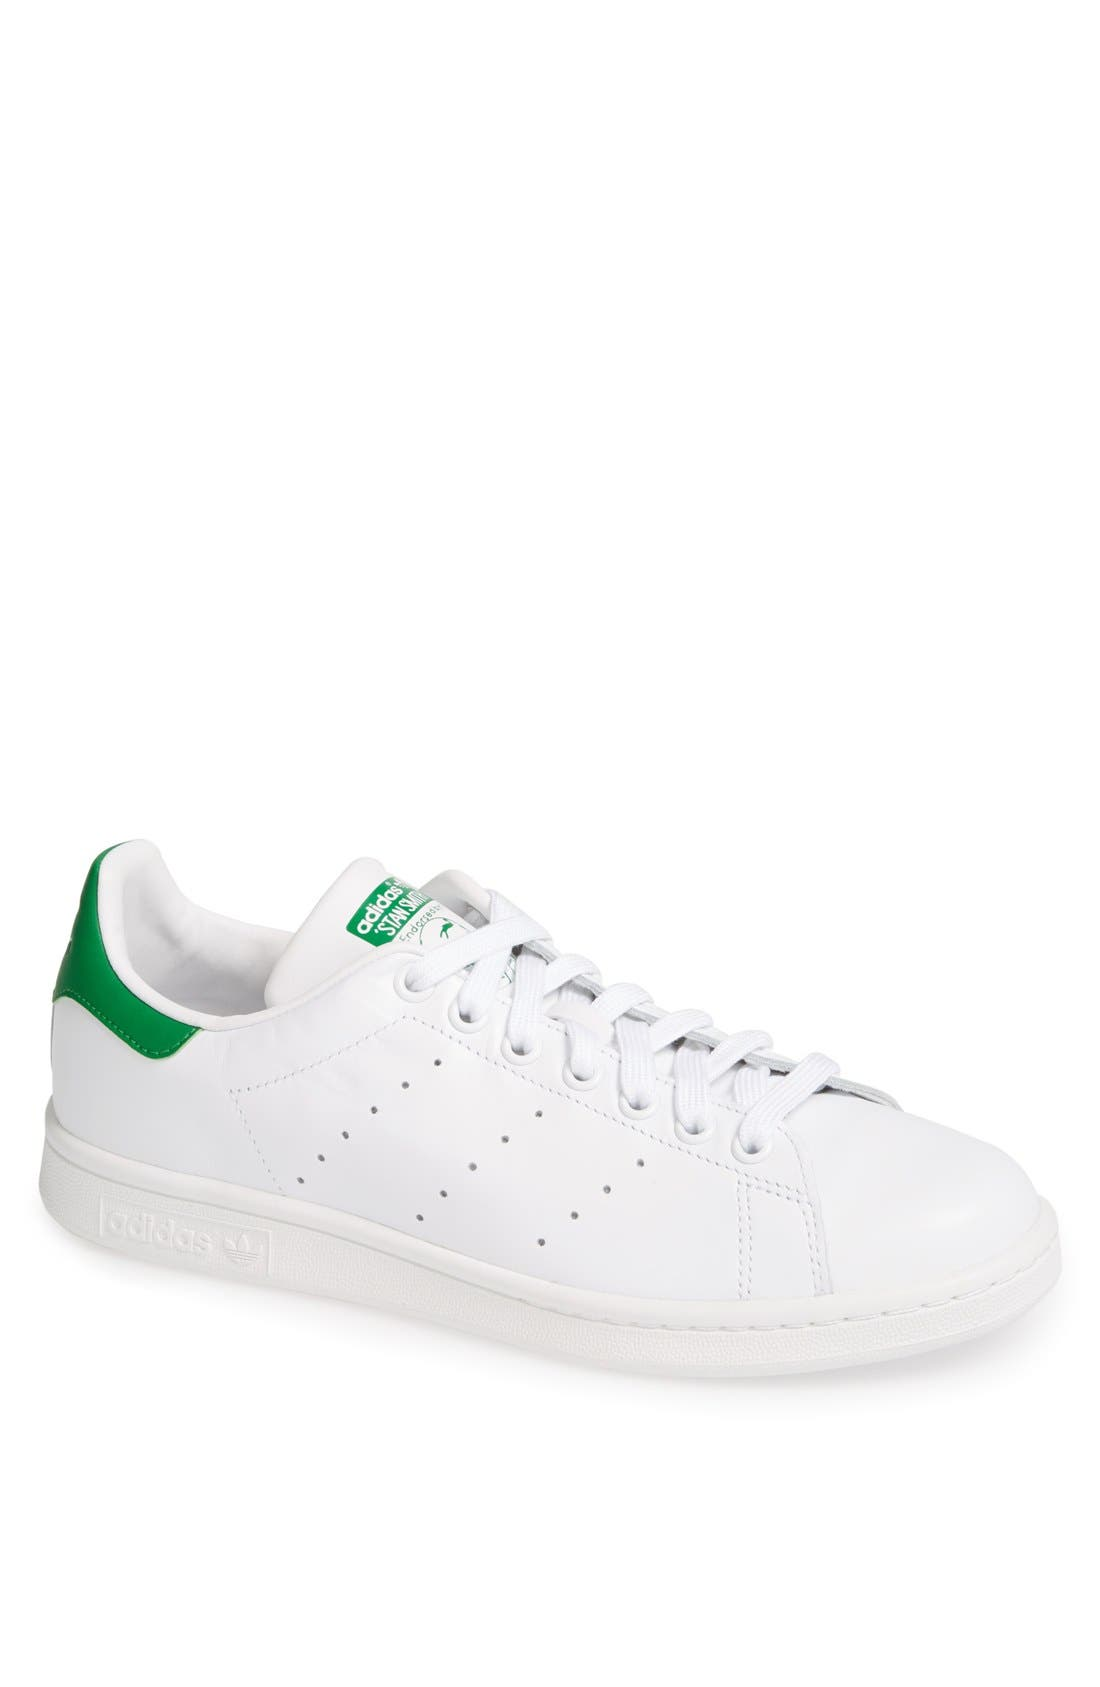 ADIDAS, Stan Smith Sneaker, Main thumbnail 1, color, 100